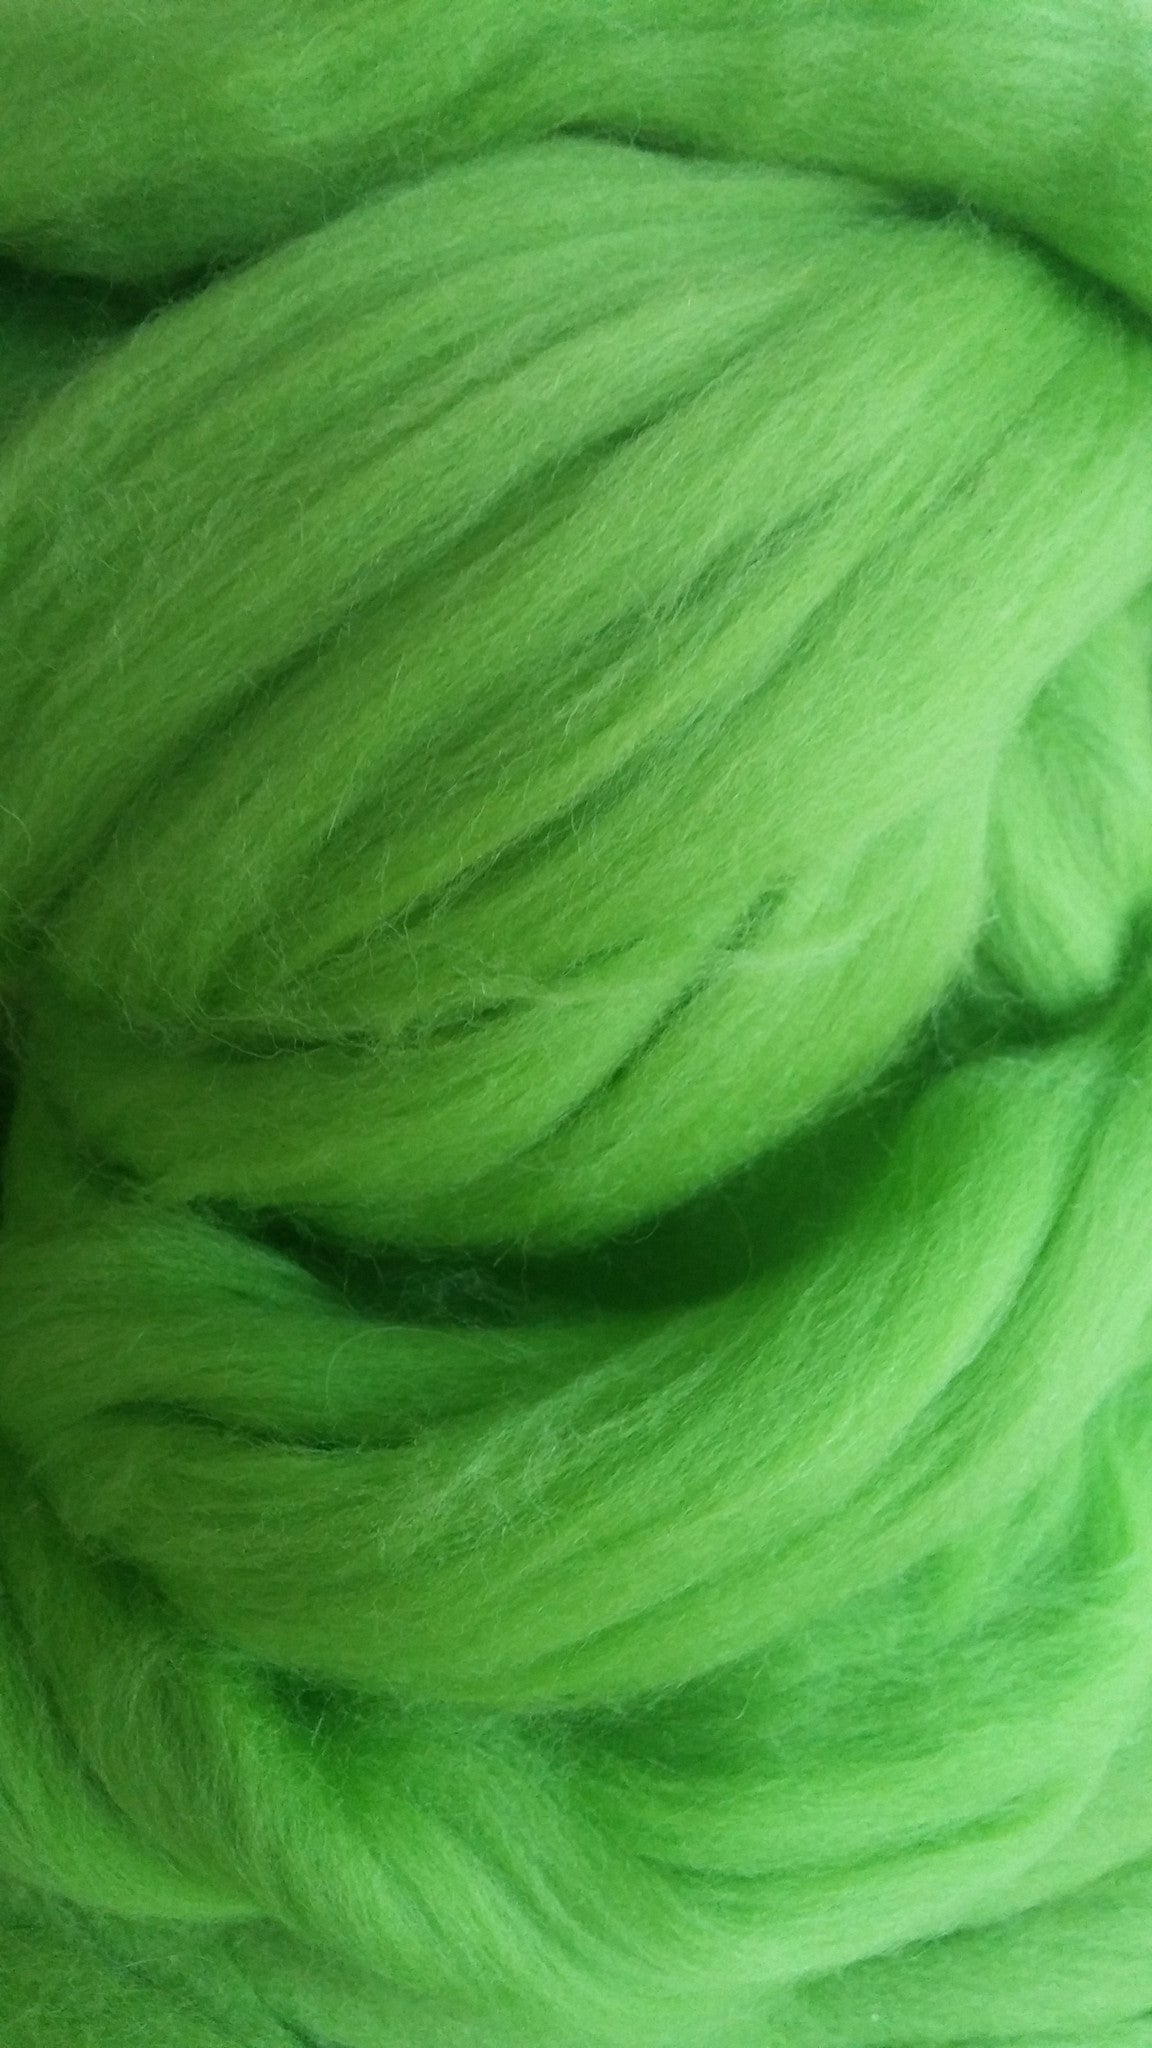 Green Merino Wool Top Roving